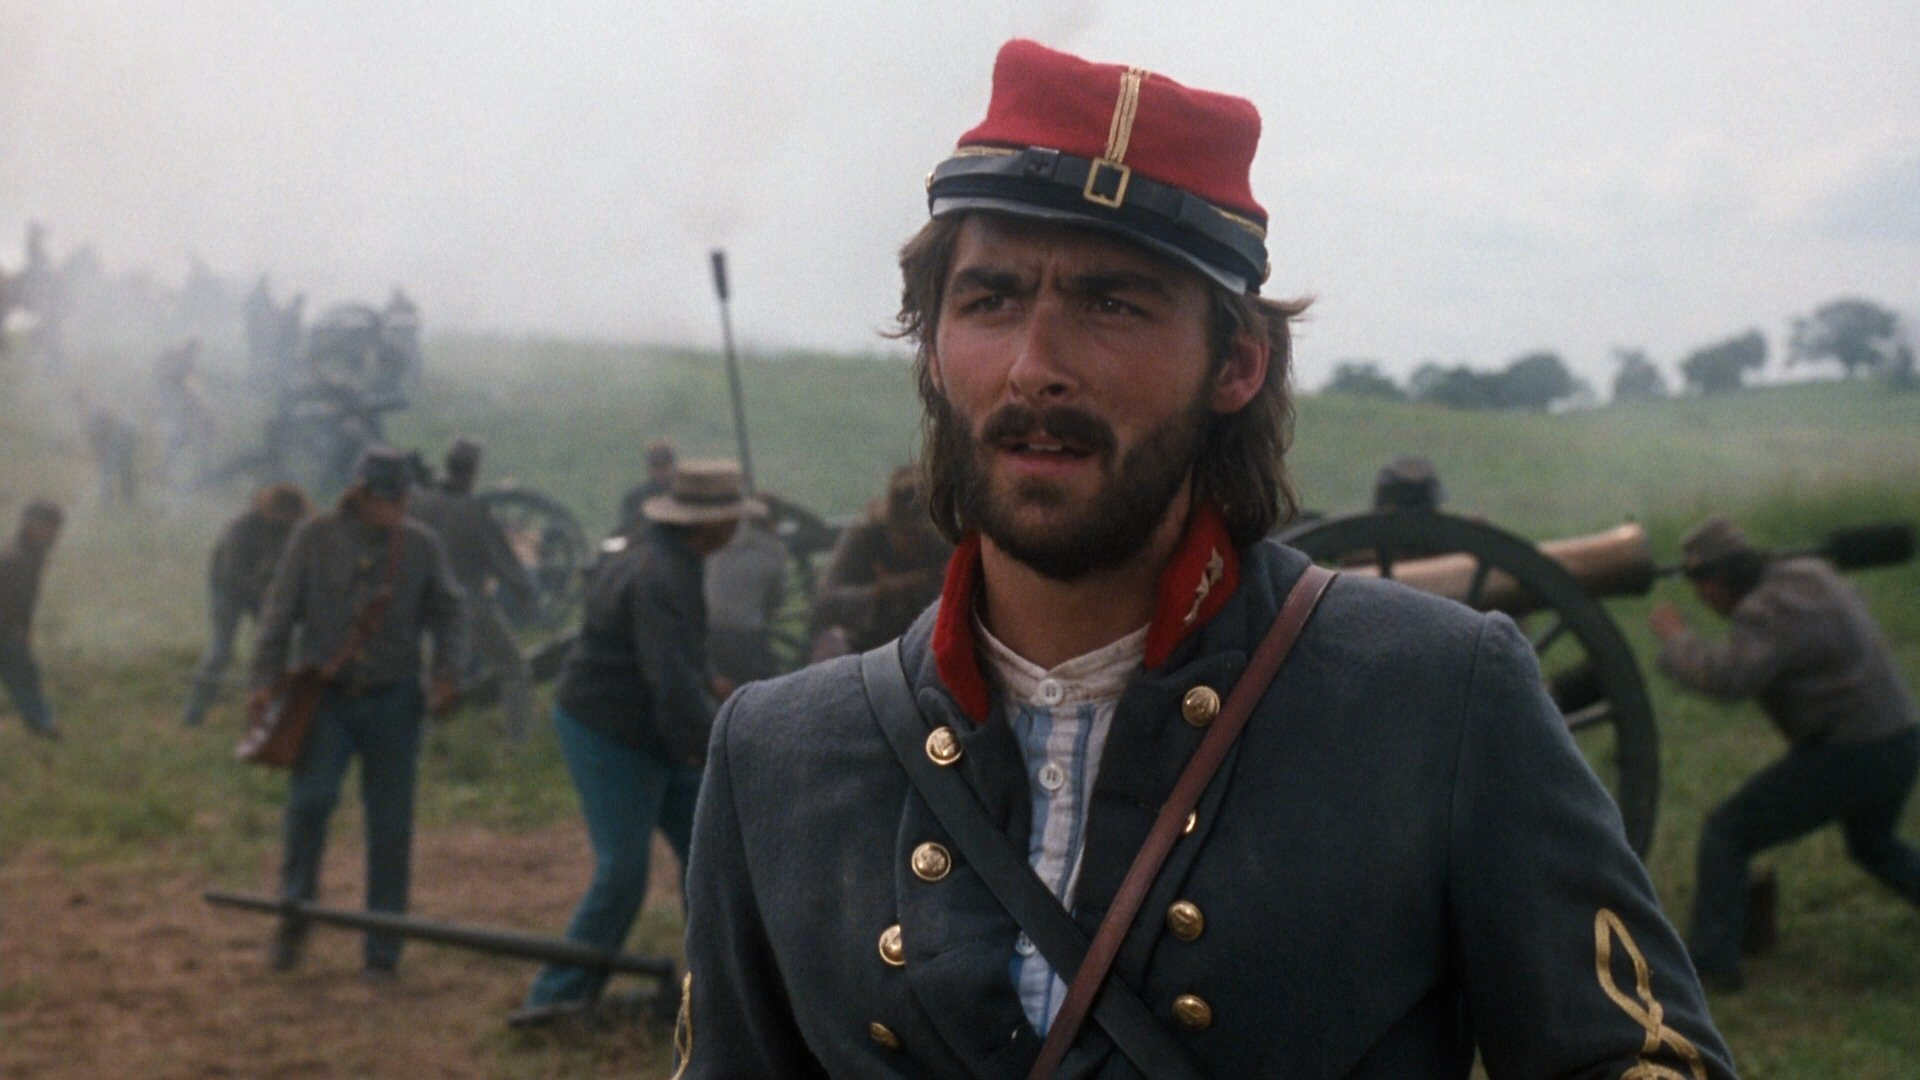 Working Cinematographer - Cinematography in Gettysburg - ProductionBeast